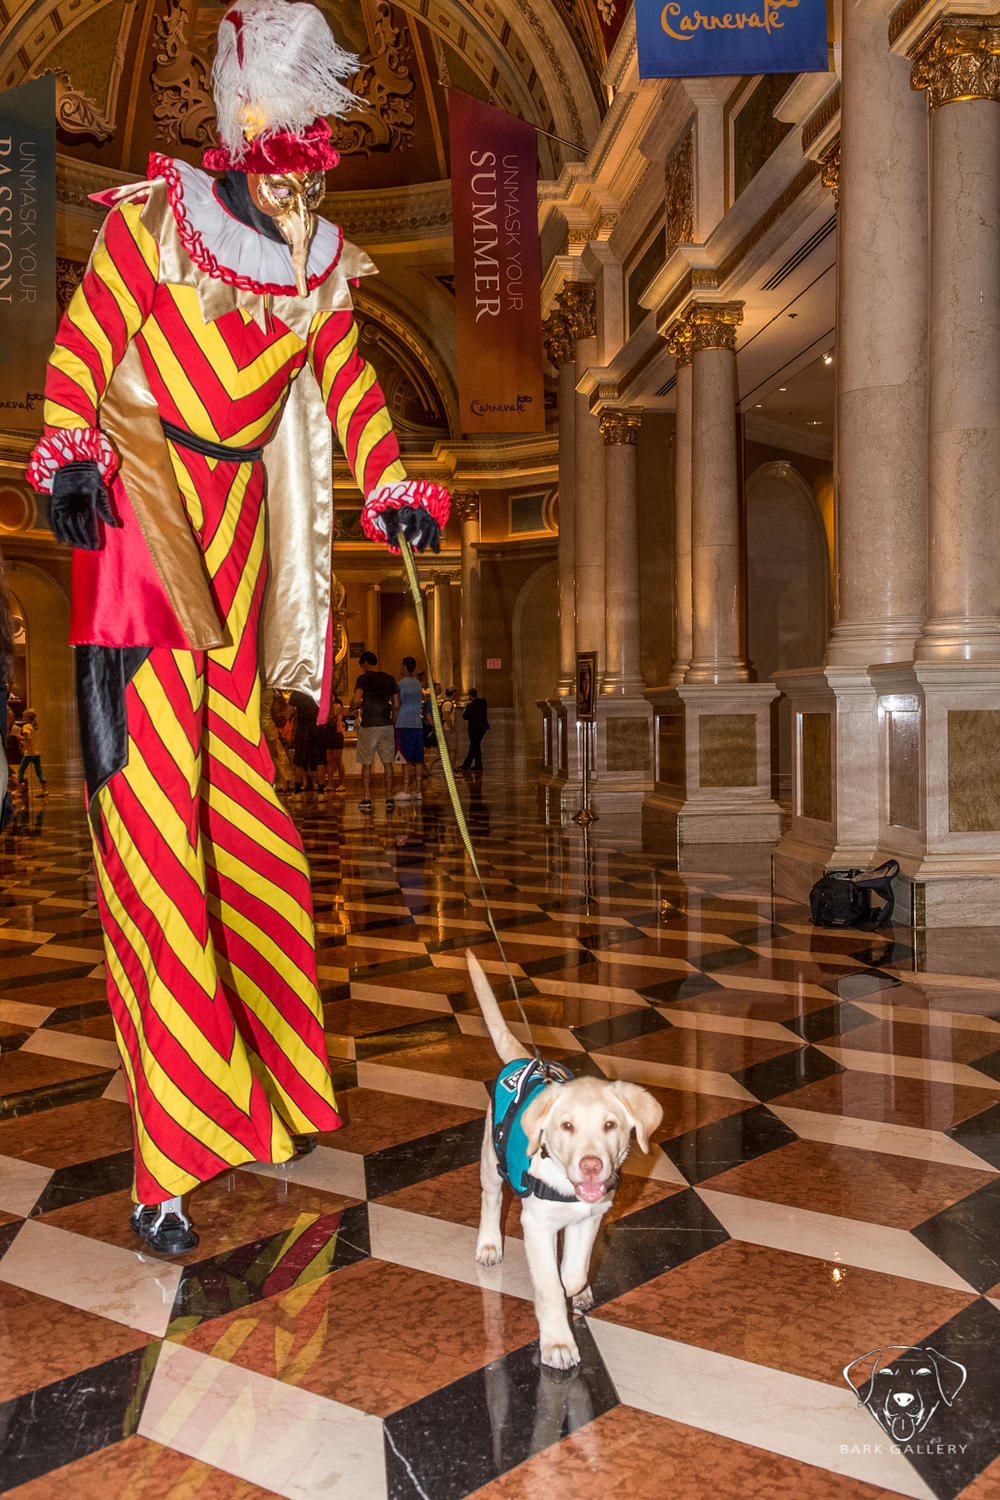 Fred going for a walk at the Venetian